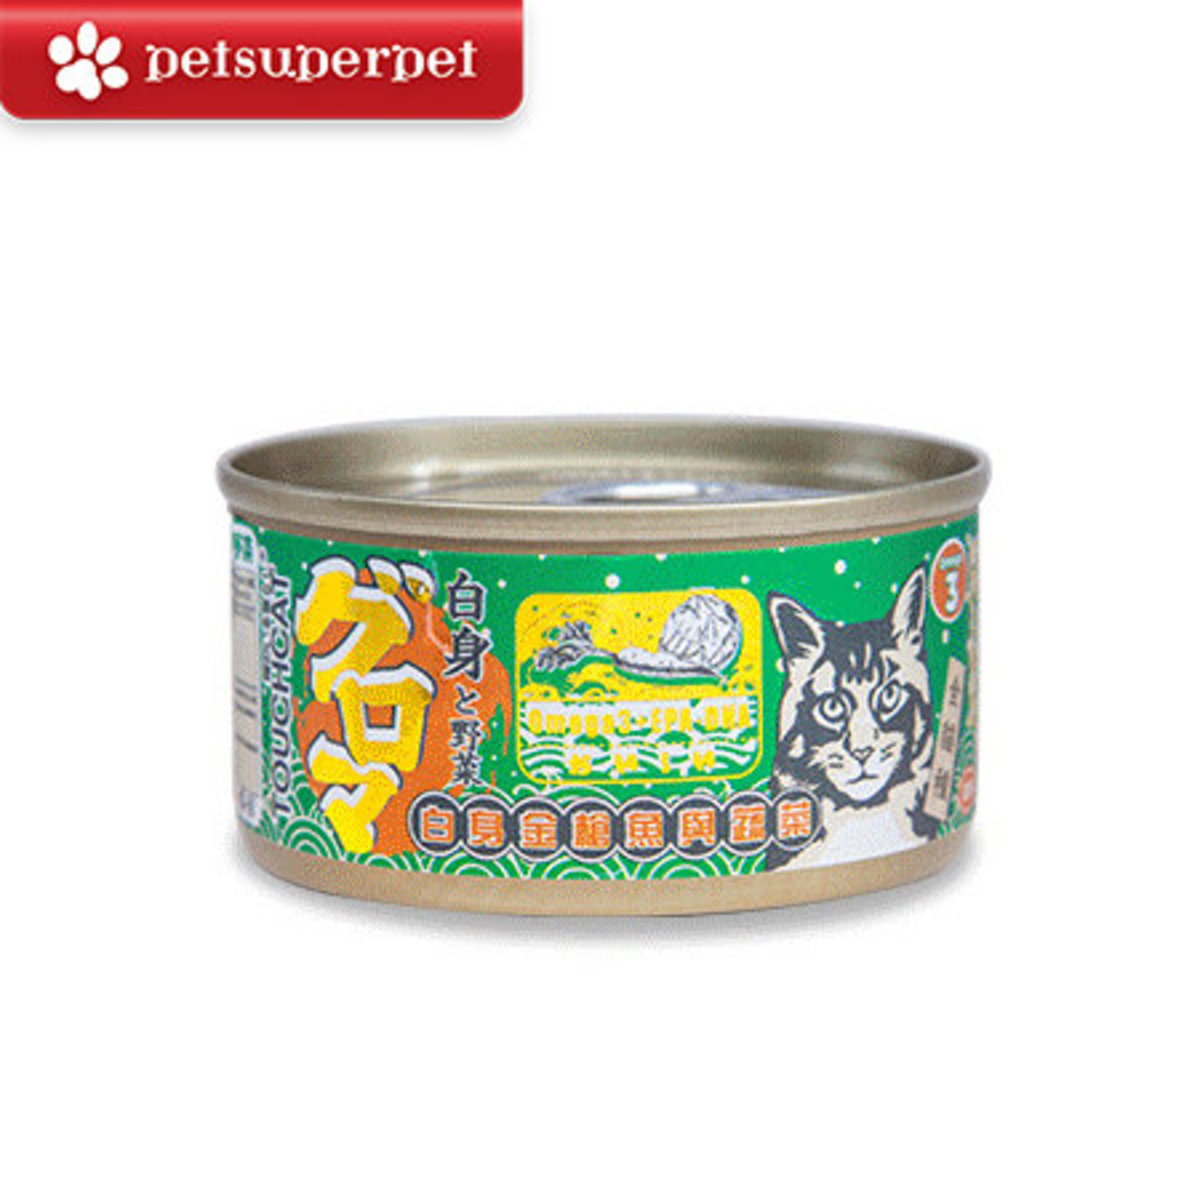 Japan Tuna & Vegetables Cat Can (Parallel Import Goods) - 85g